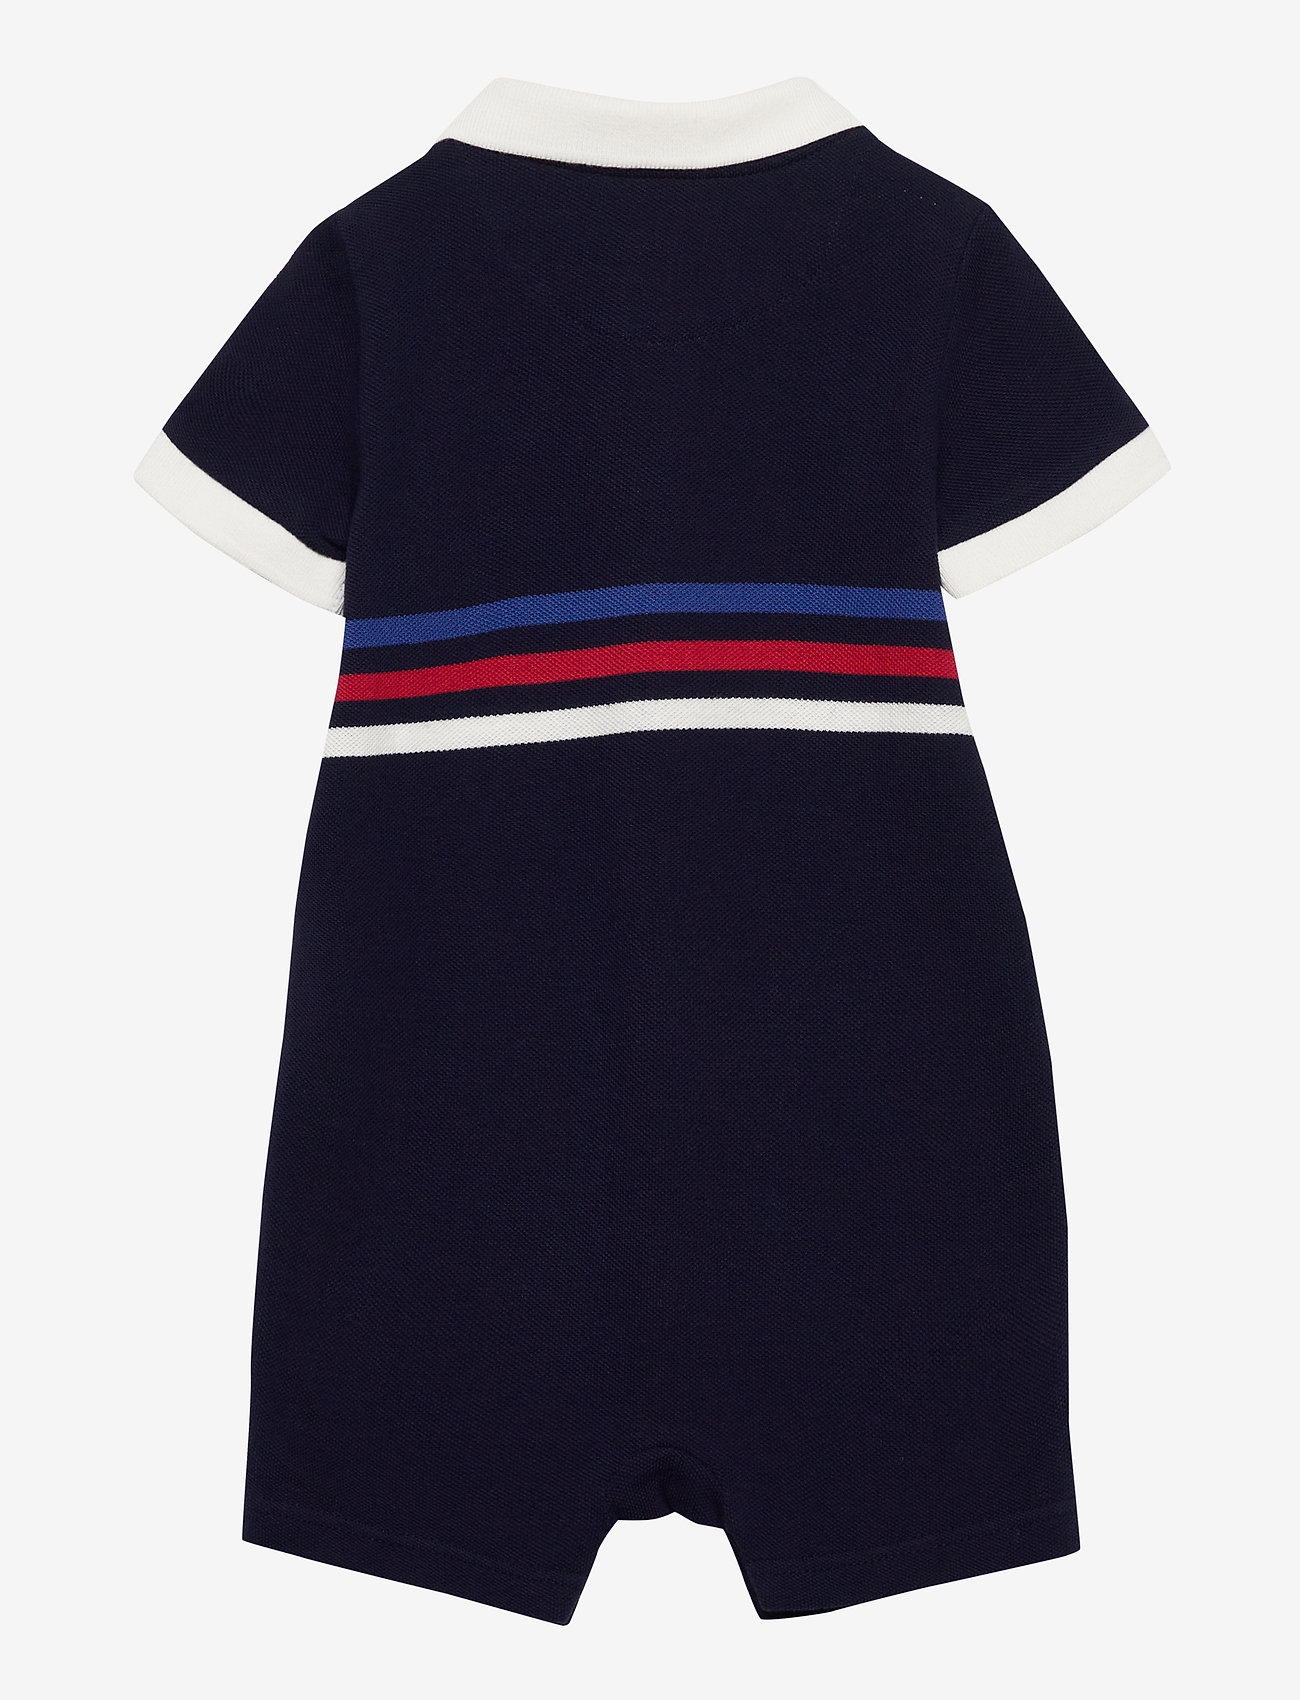 GAP - Baby Polo Shorty One-Piece - kurzärmelig - navy uniform - 1